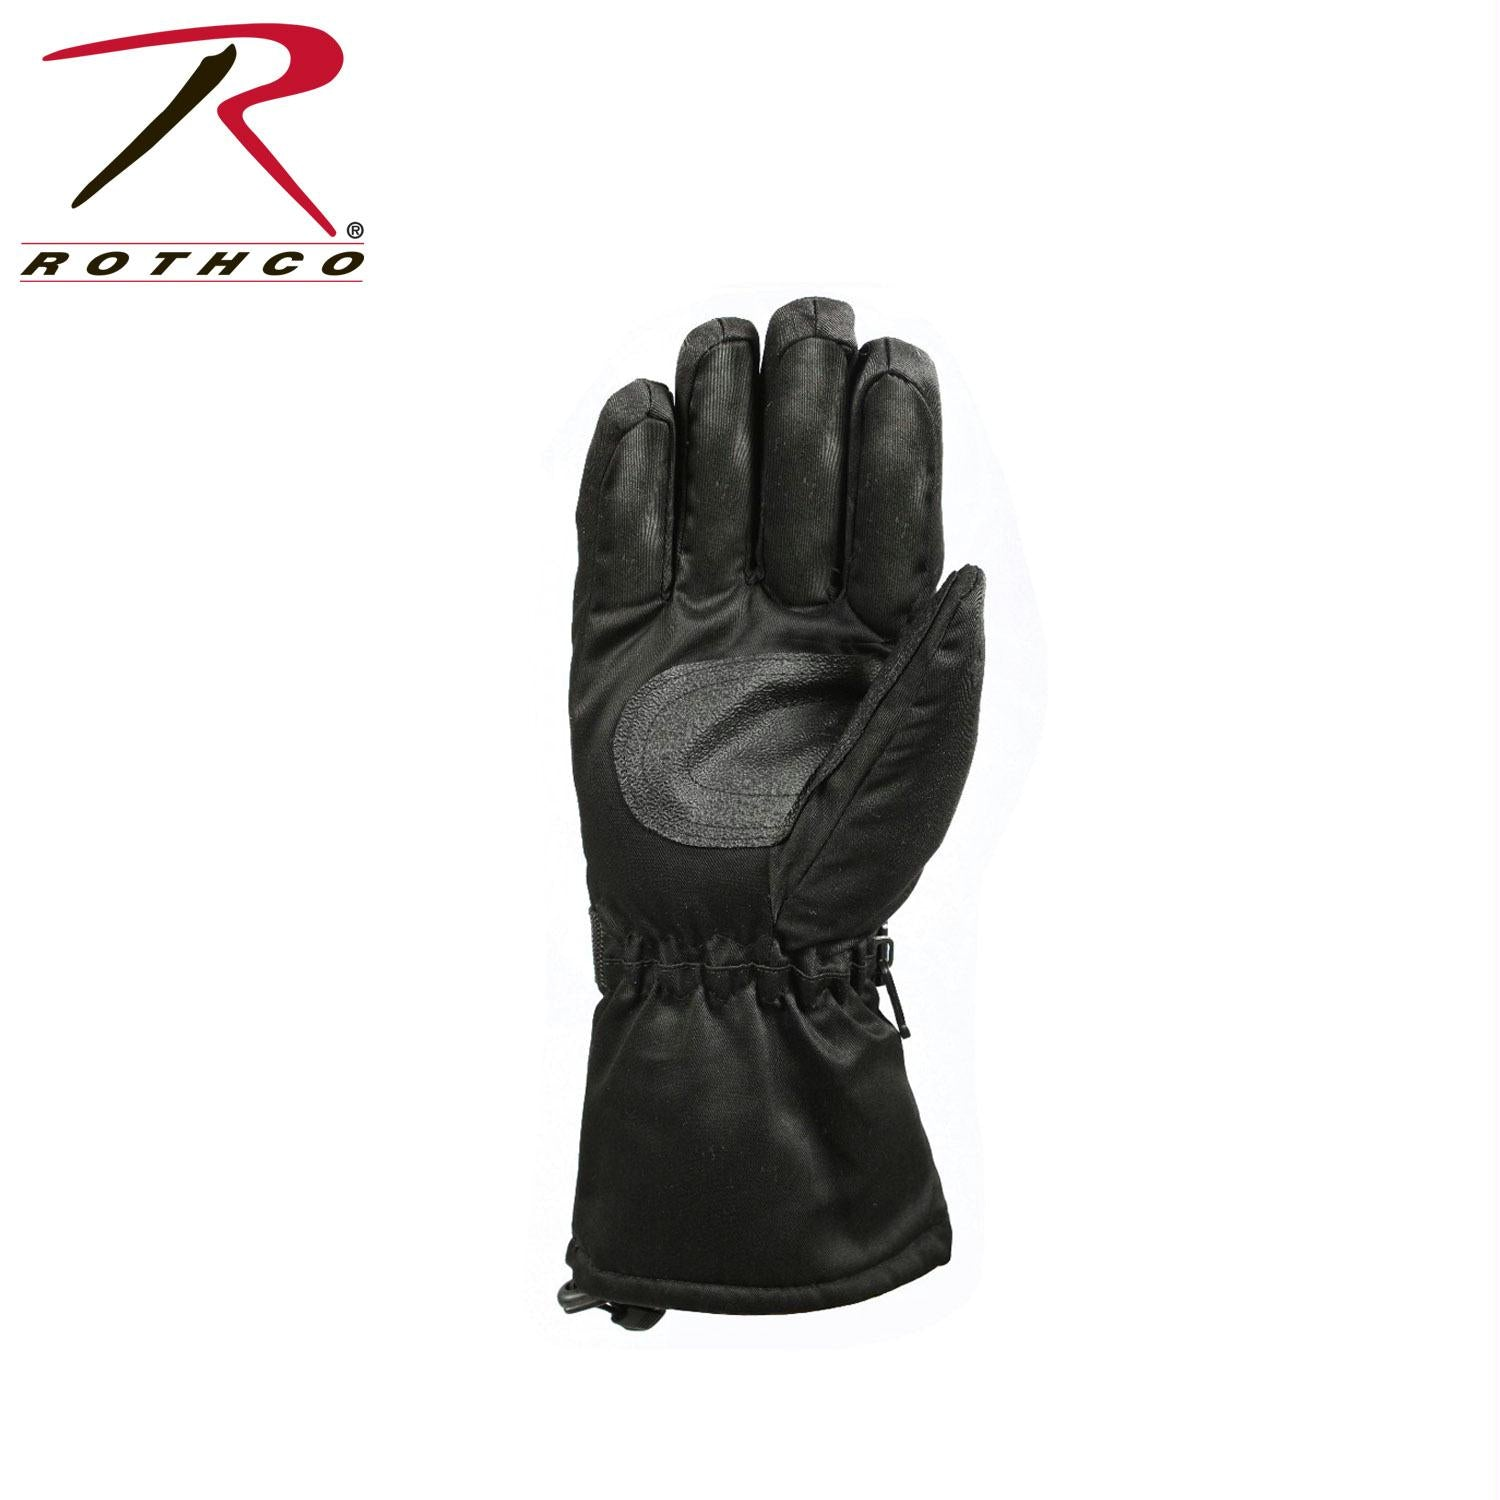 Rothco Extra-Long Insulated Gloves - Black / M